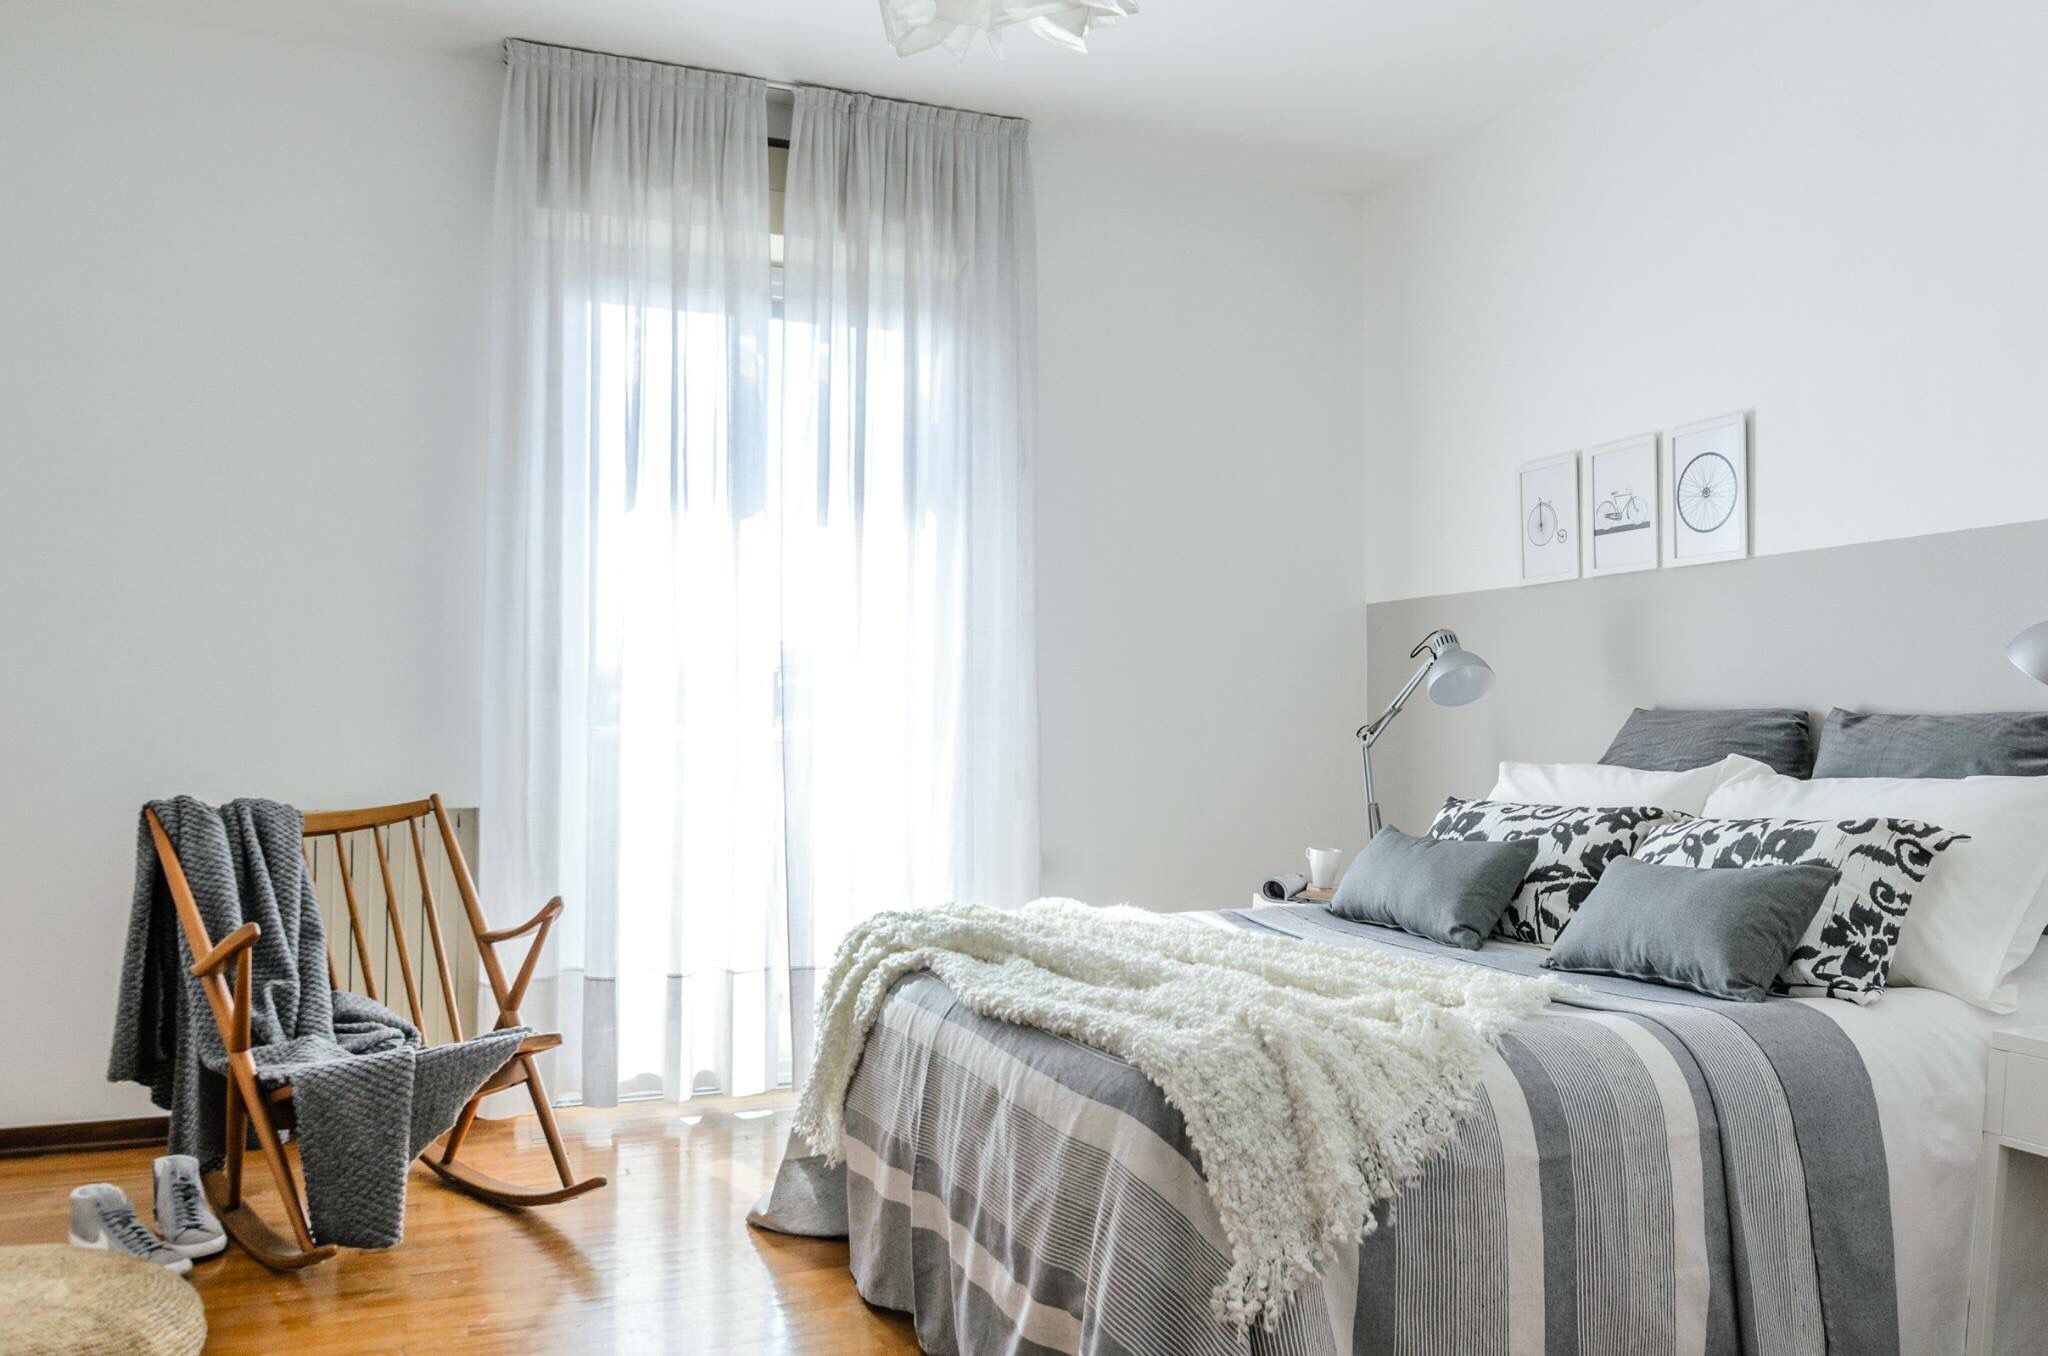 How to Decorate the Bedroom When You Move In Together